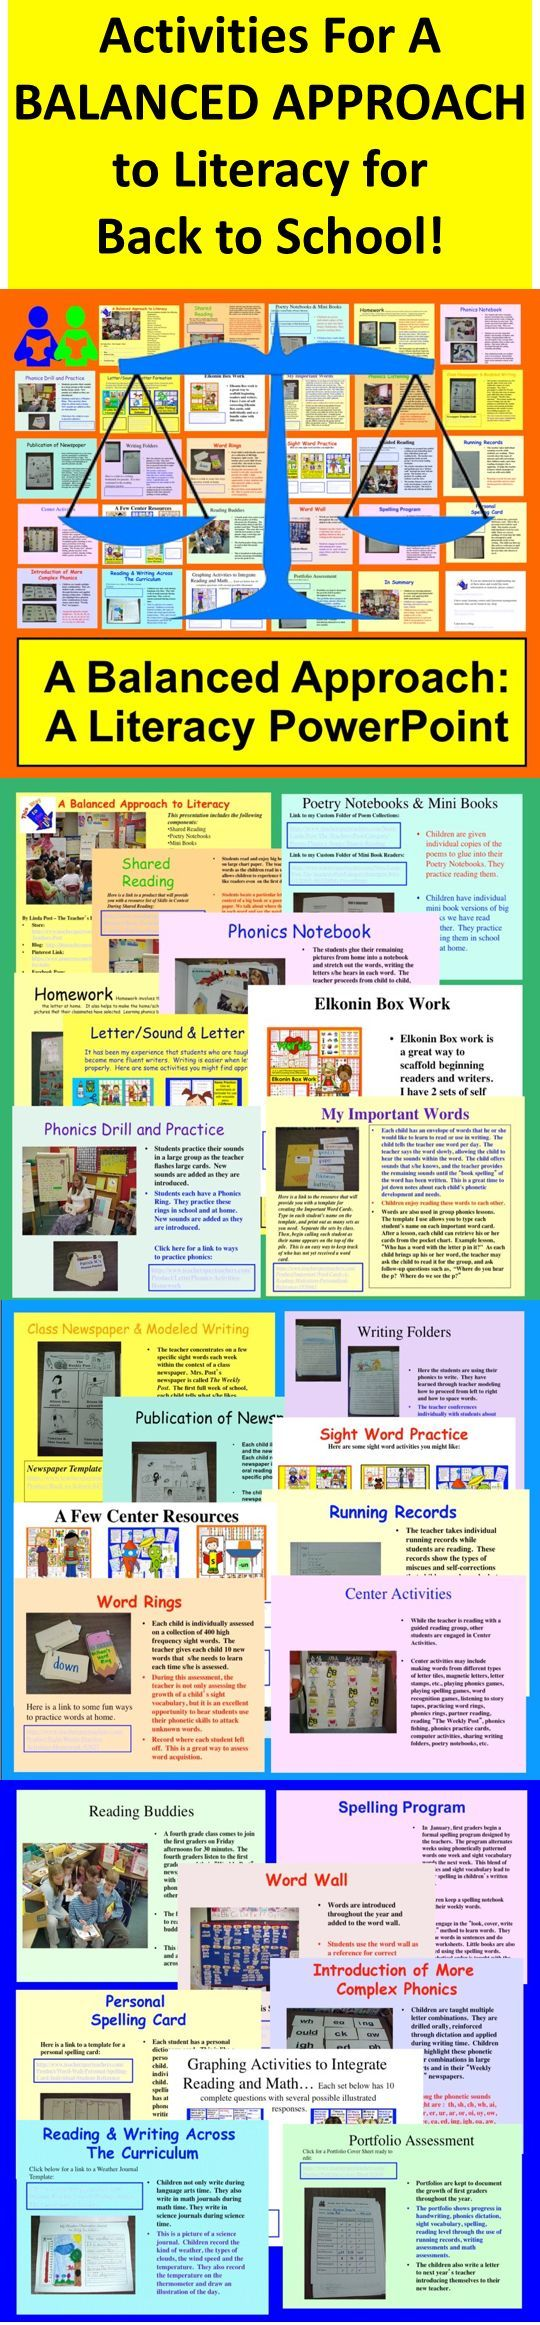 $ ★ Balanced Literacy for the Primary Grades with Back To School Activities  ★ This 30 slide PowerPoint Balanced Literacy presentation describes all of the components I use to provide young learners with an effective balanced literacy program. Before you head back to school, see if you'd like to incorporate any of these ideas into your literacy block as back to school activities.   ★ I have described all of the components that I always include in my classroom during my many years of…